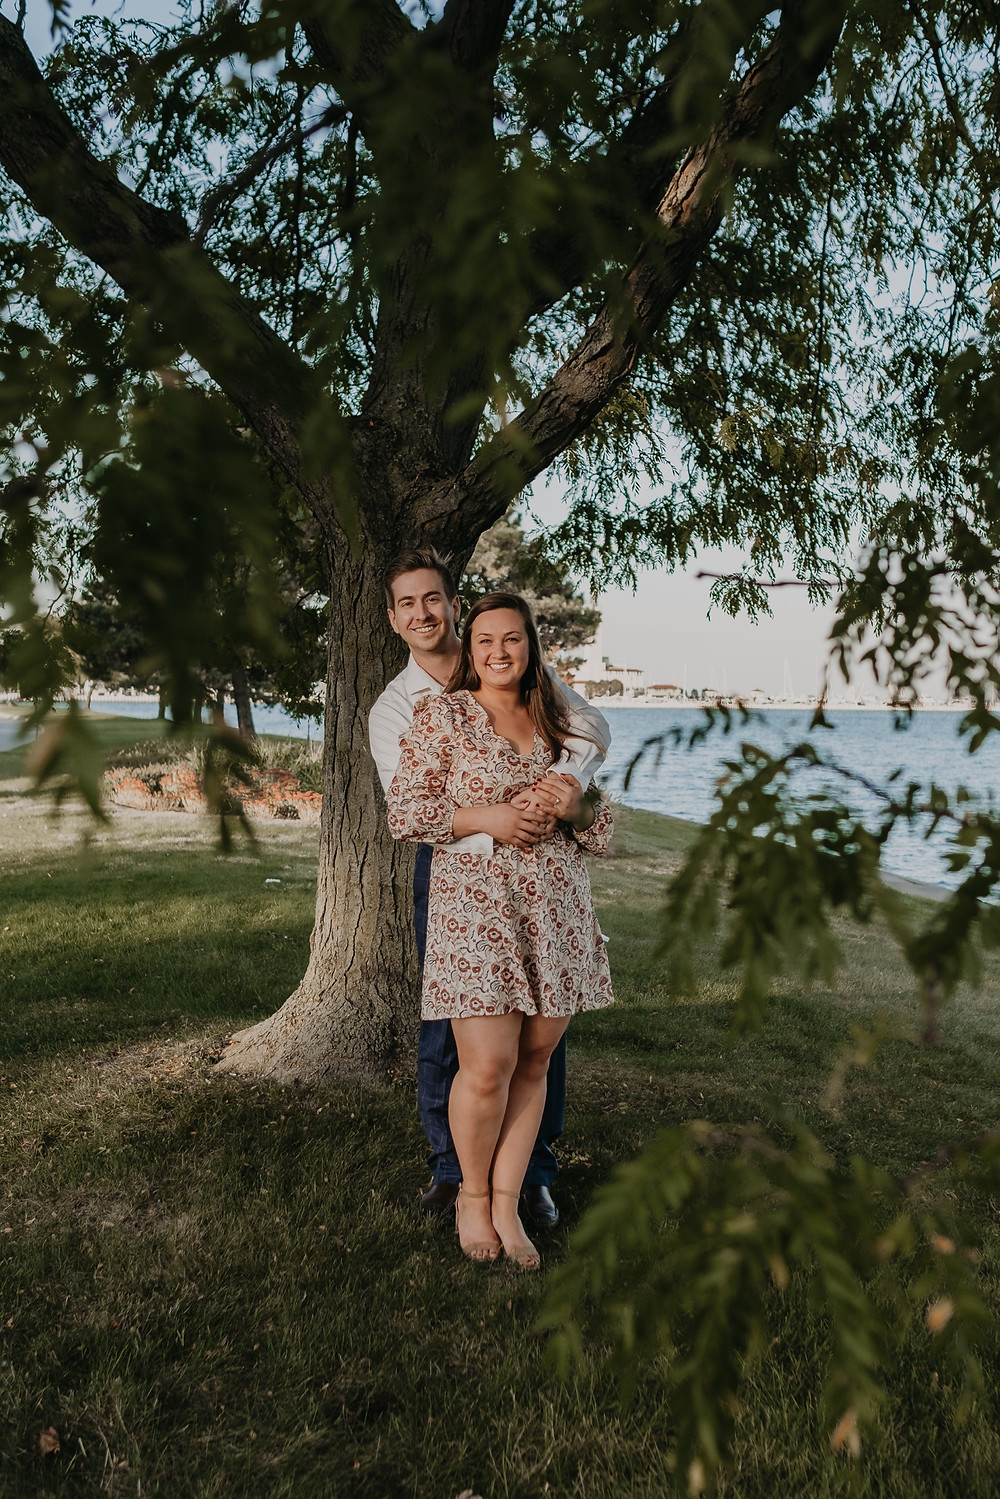 Metro Detroit summer engagement photos. Photographed by Nicole Leanne Photography.